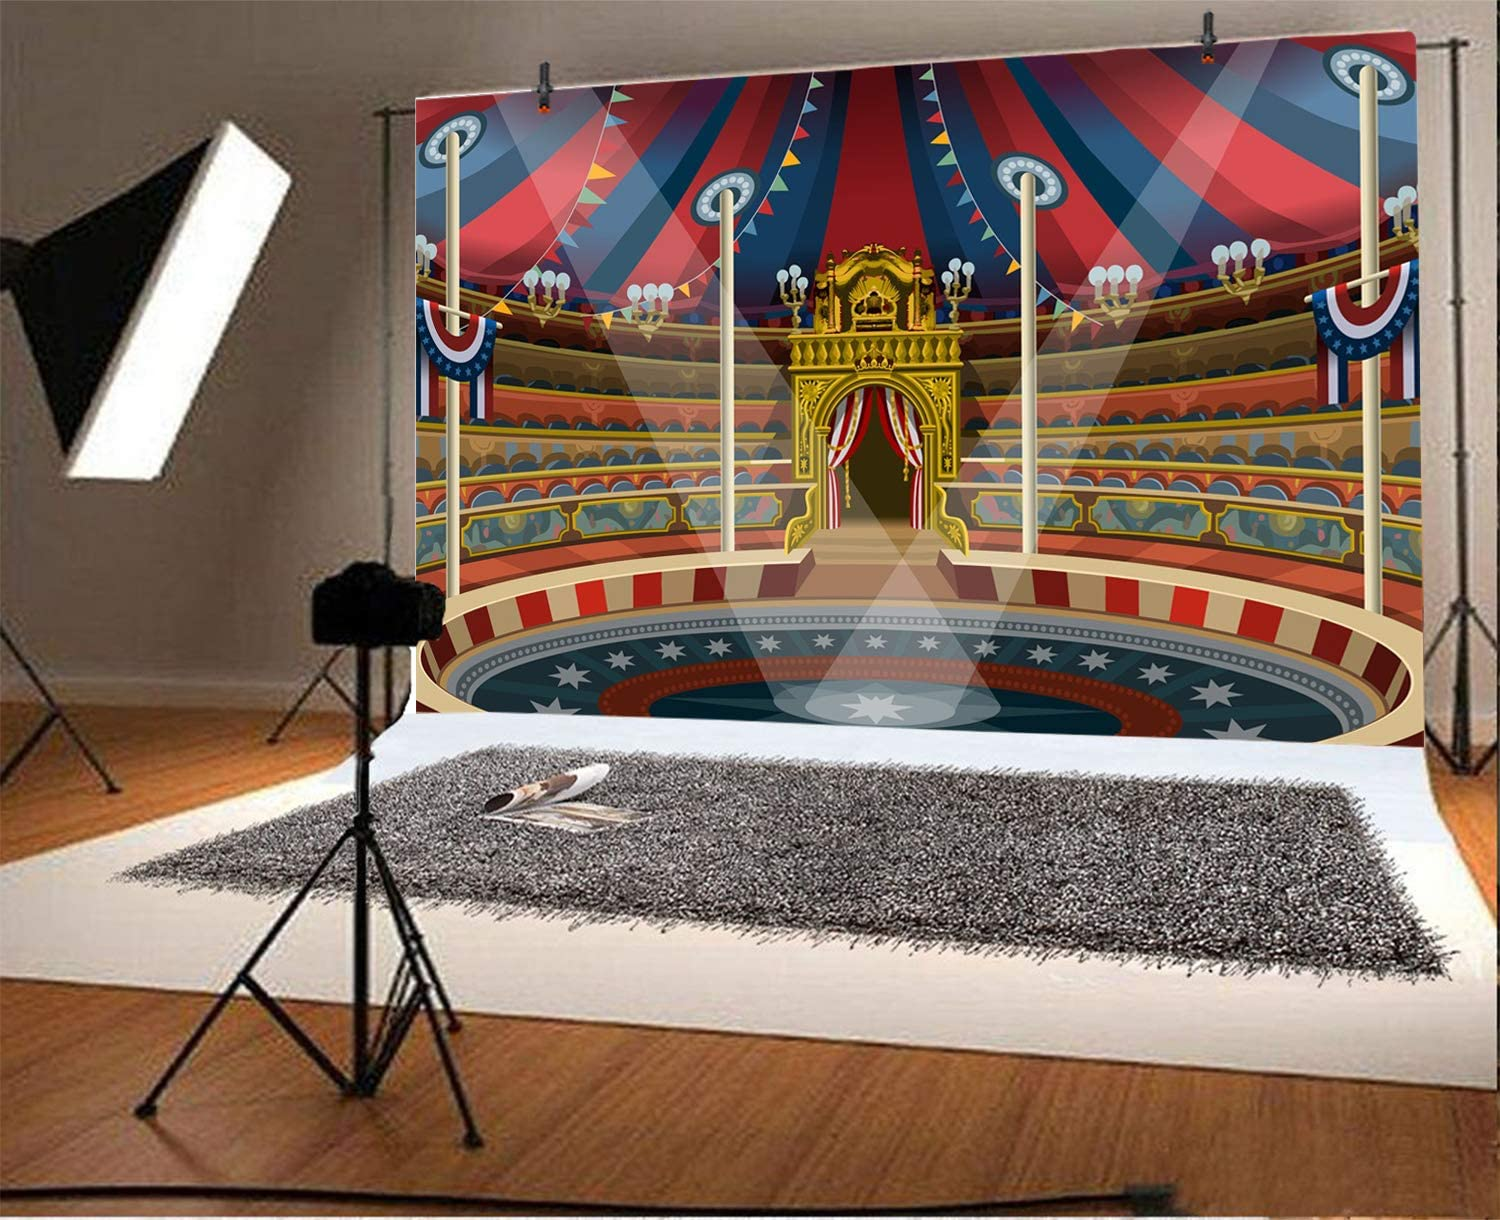 Yeele 10x8ft Circus Background for Photography Theatre Performing Tent Ribbon Photo Backdrop Birthday Baby Shower Party Decoration Boy Girl Portrait Booth Shoot Studio Props Wallpaper